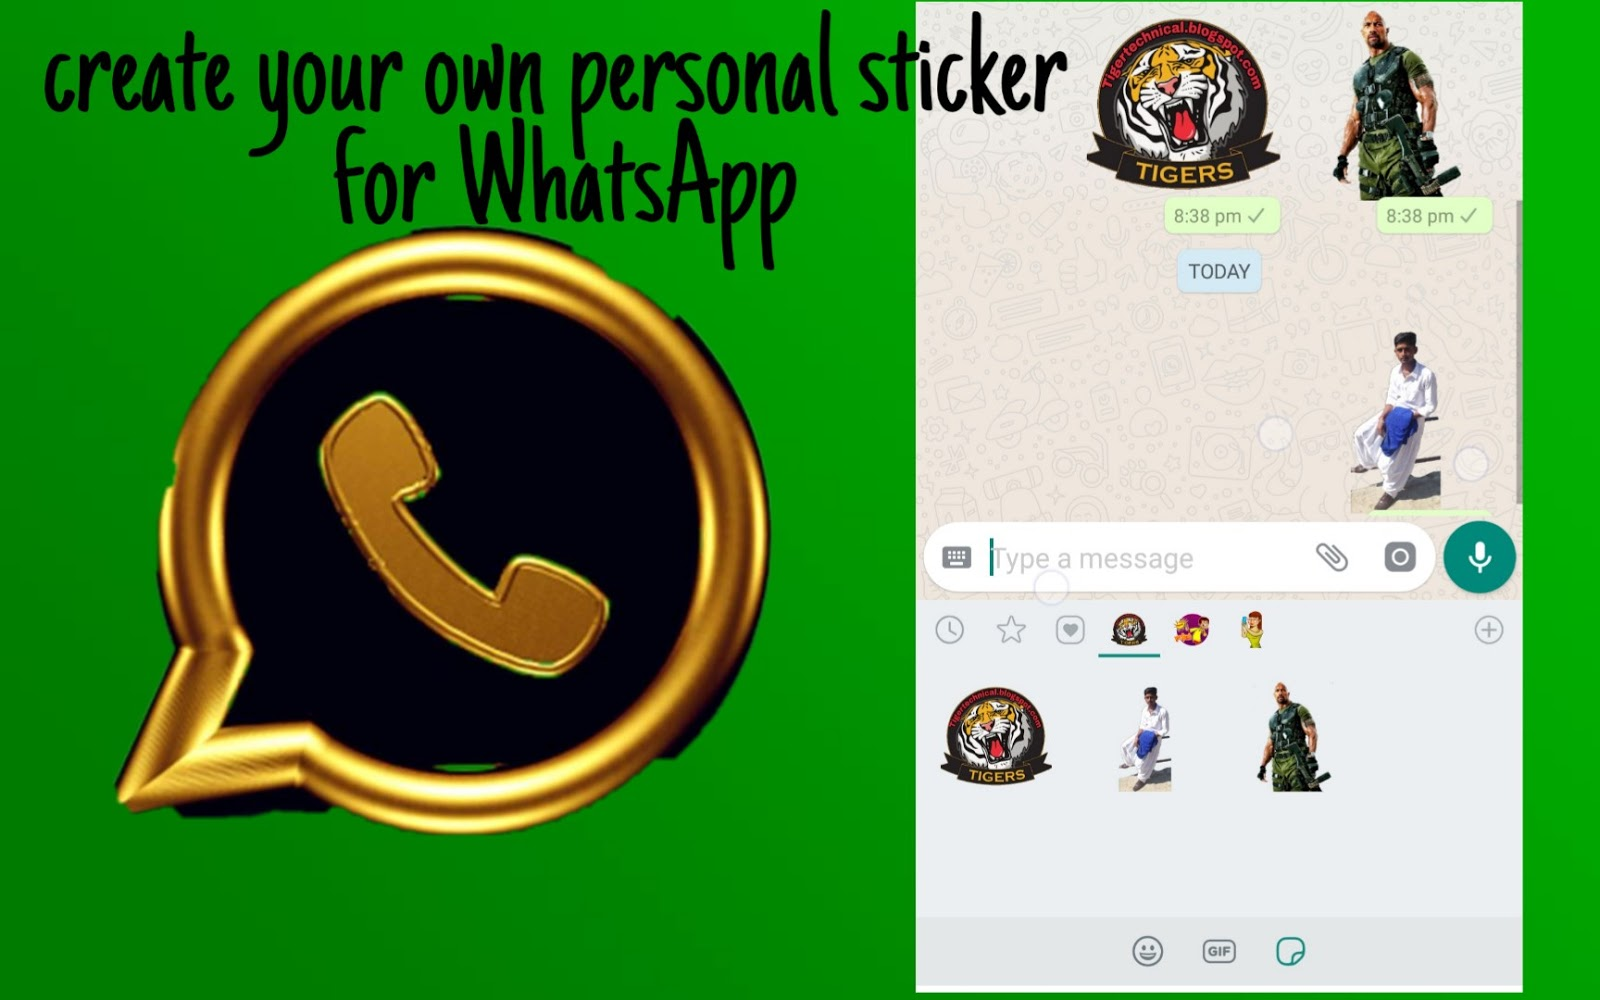 Whatsapp recently rolled out much requested sticker support and while you can get a range of stickers for whatsapp by either searching the application